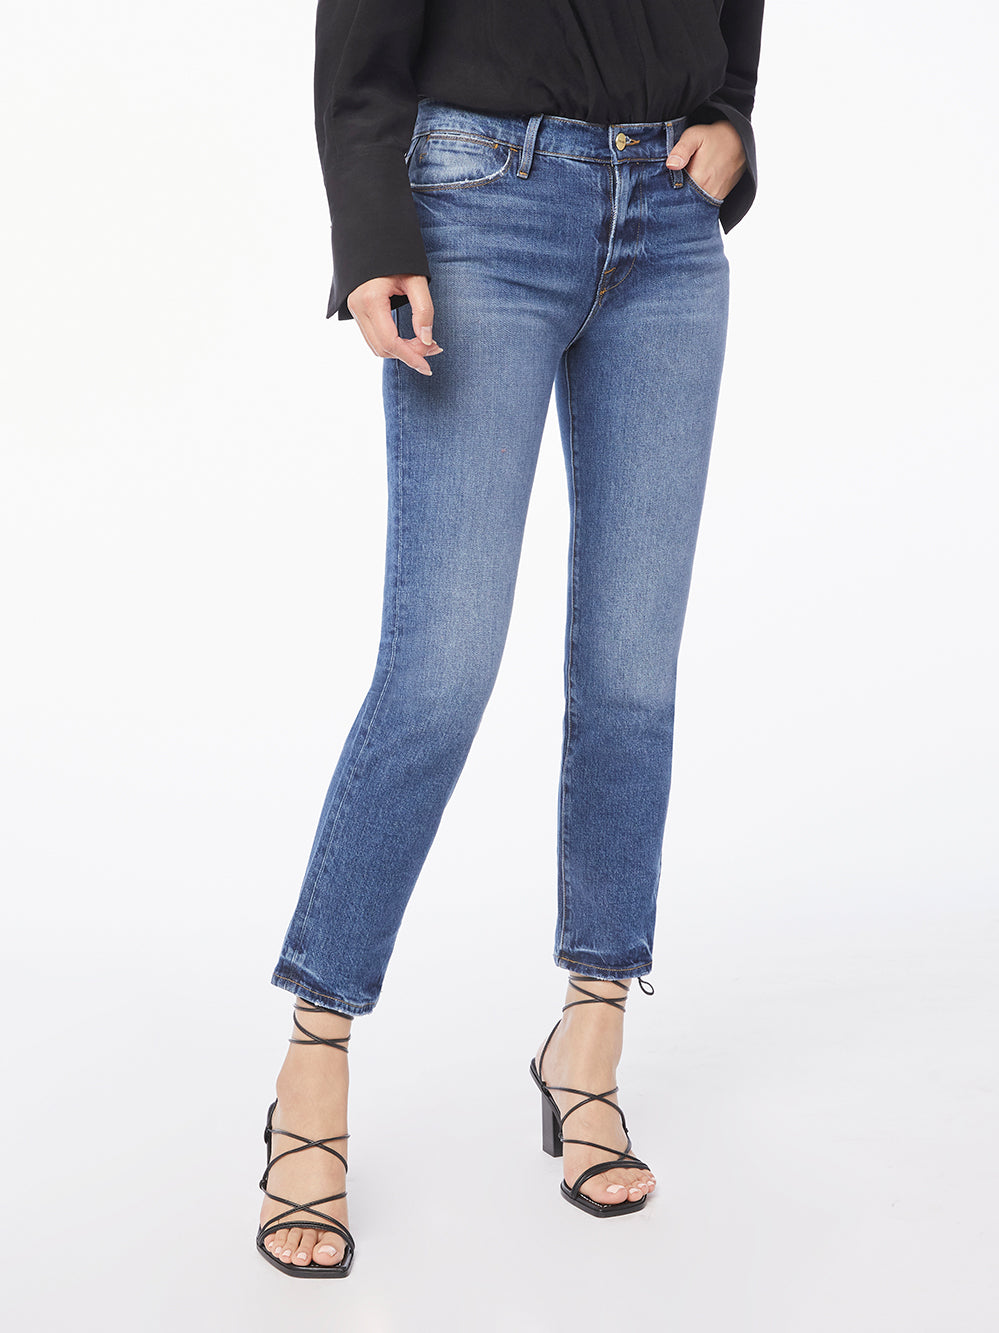 jeans front view alt:hover